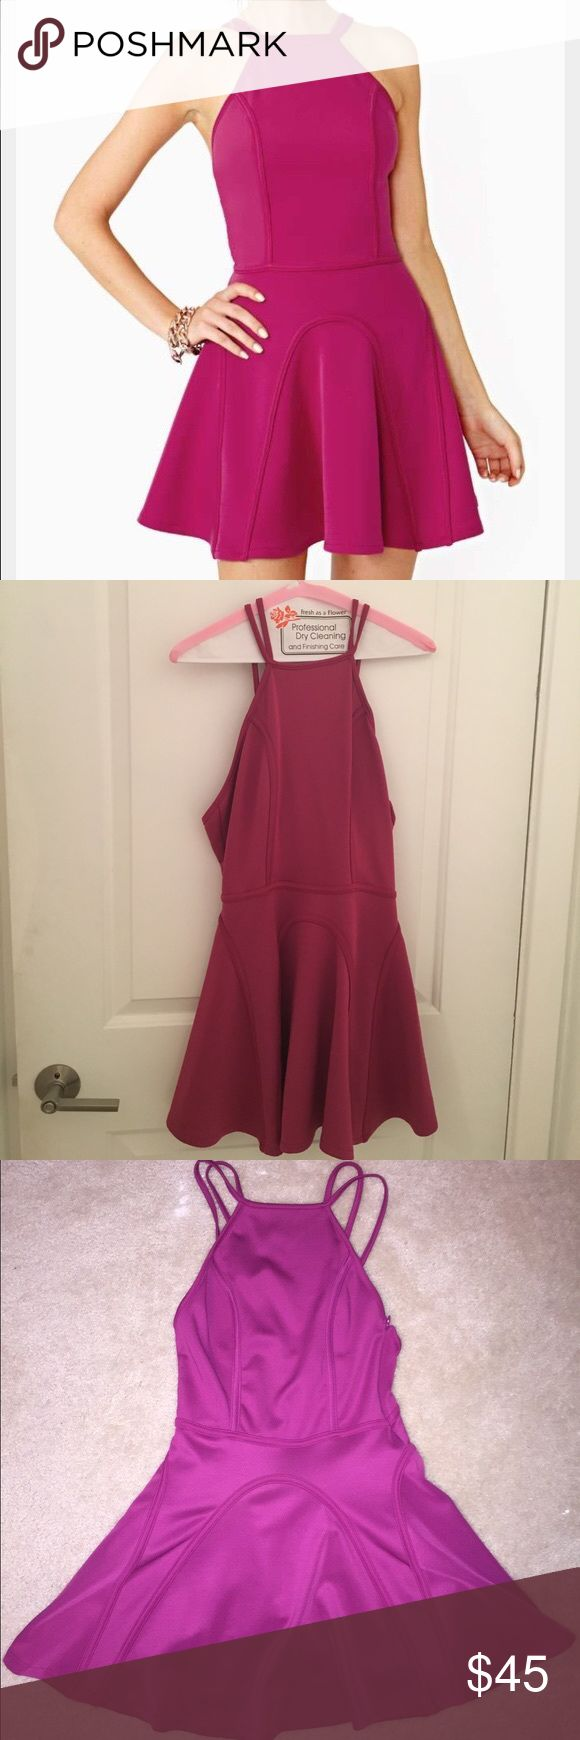 Nasty Gal Fuchsia Circle Skater Dress Size M Nasty Gal Fuchsia Circle Skater Dress Size M. SO ADORABLE. Freshly dry cleaned, no signs of damage/wear. Worn once to an event. Zipper and zipper clasp are intact. I would keep but it's super short (I'm 5'9). Mini style, high neck with cool straps on the back. Lining detailed on back and front for flattering flare. I paired with nude pumps and a multi color clutch for a night out. Nasty Gal Dresses Mini